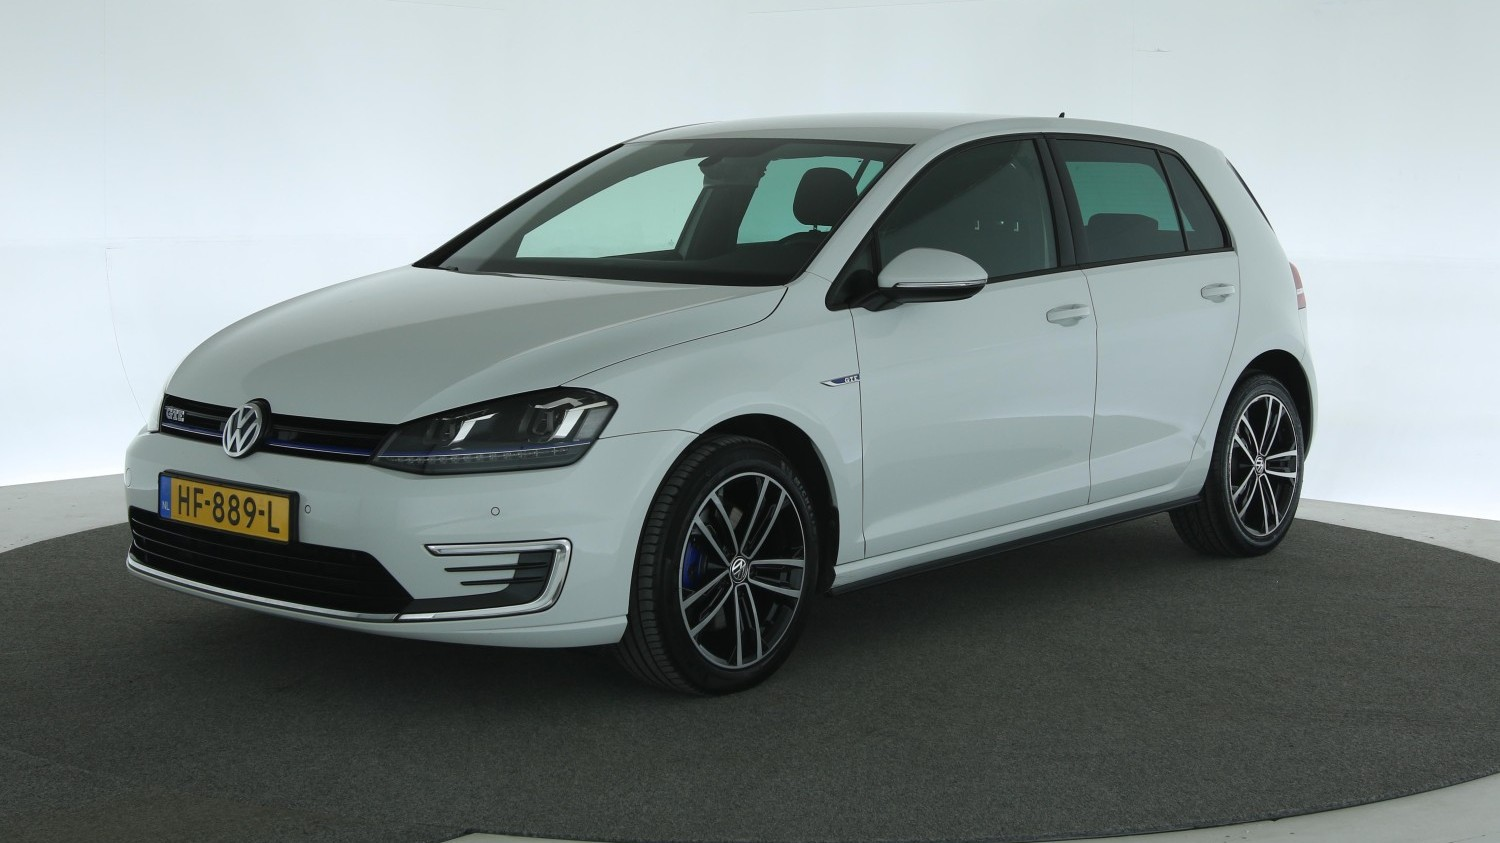 Volkswagen Golf Hatchback 2015 HF-889-L 1